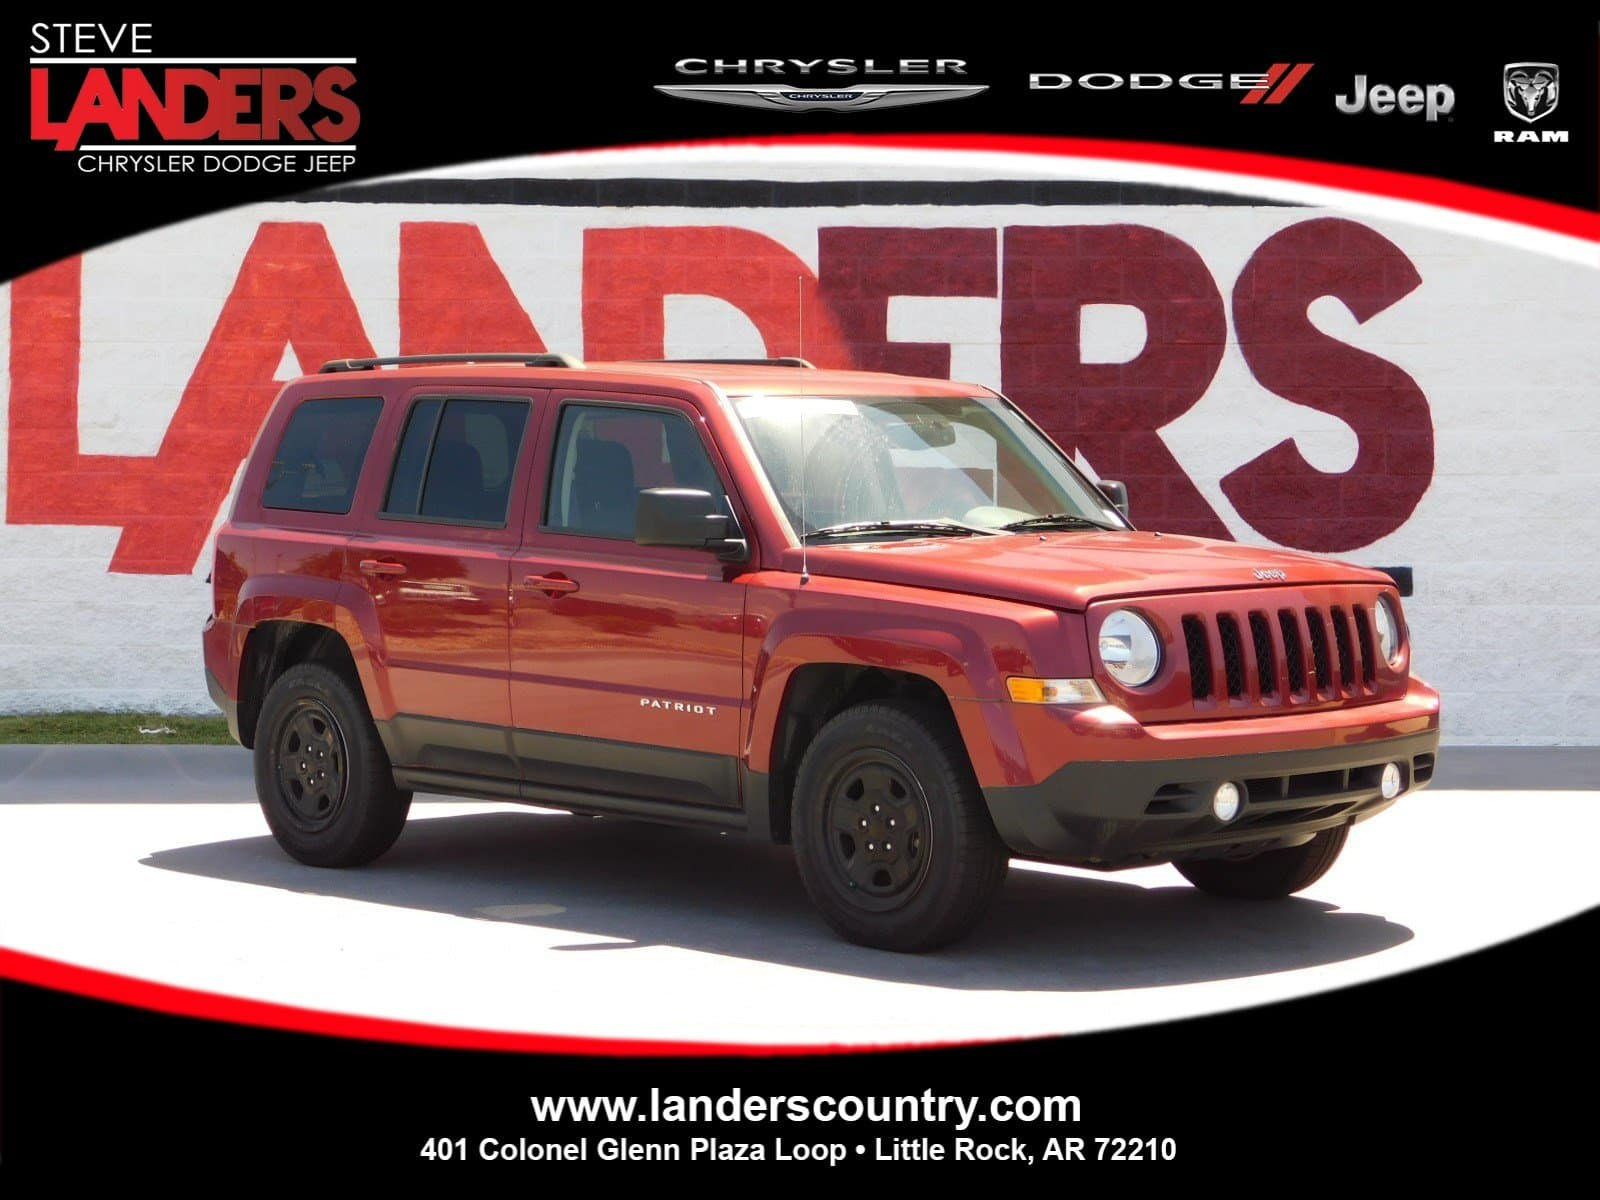 ing a new car is a big purchase and for some people ing brand new doesn t always make sense this is where used and certified pre owned cars are a